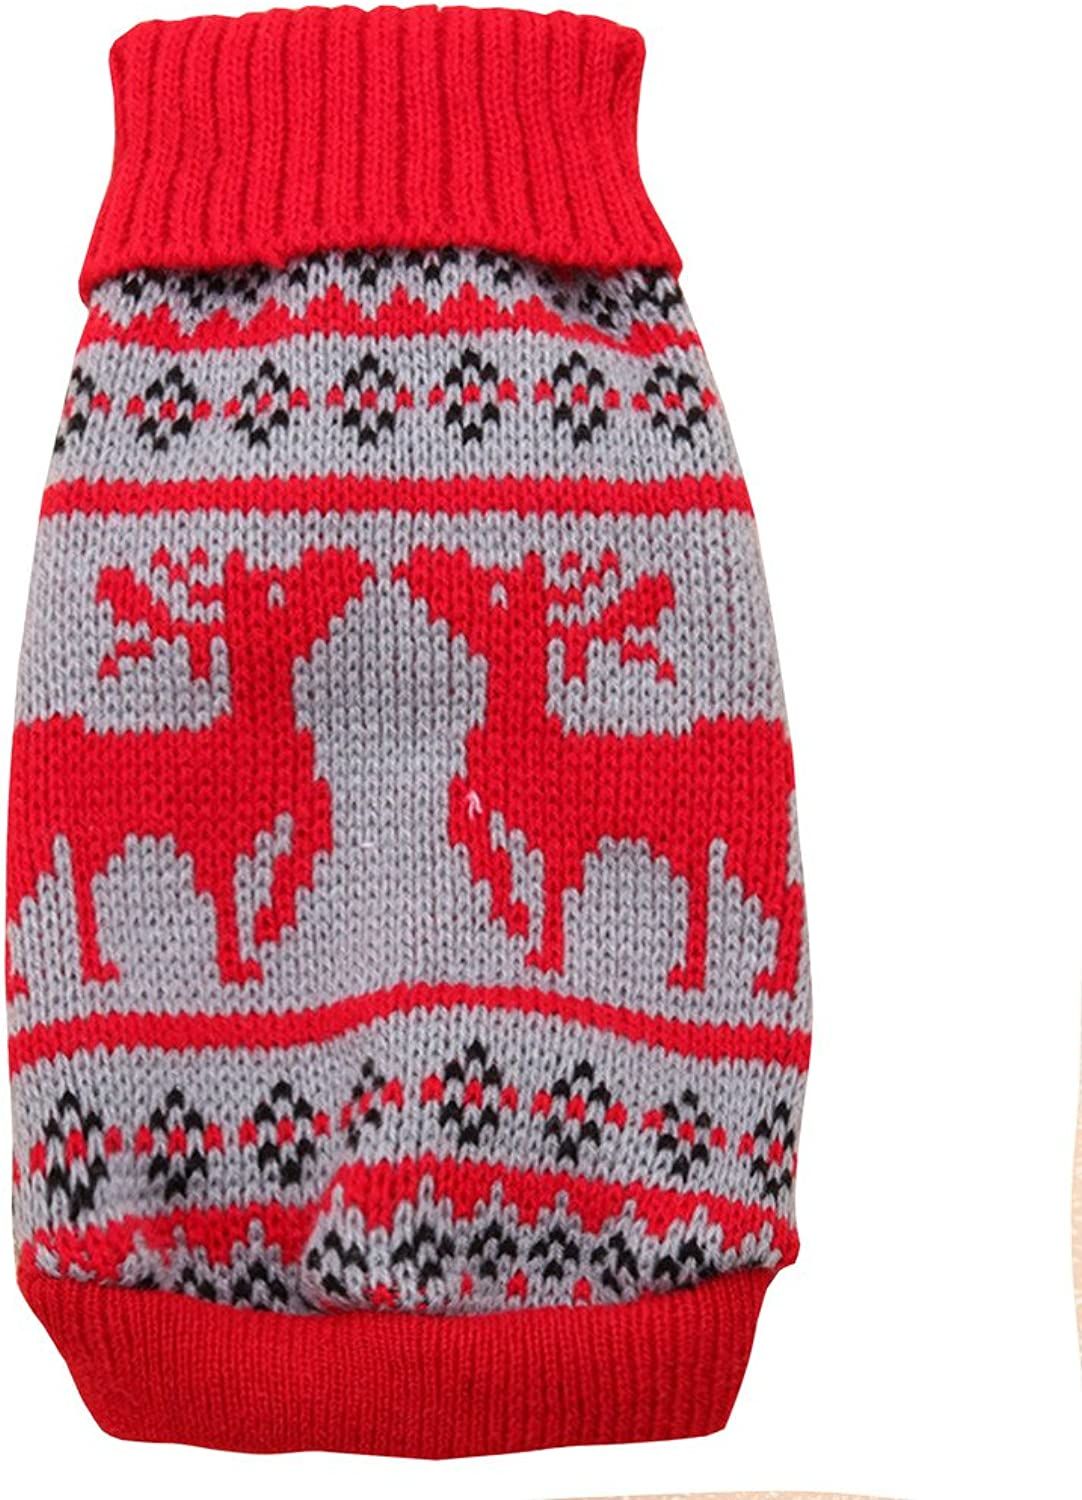 PetBoBo Pet Dog Cat Christmas Reindeer Sweater Clothes for Small Medium Large Dogs Cat Puppy Kitten Christmas Boy Girl Red XL